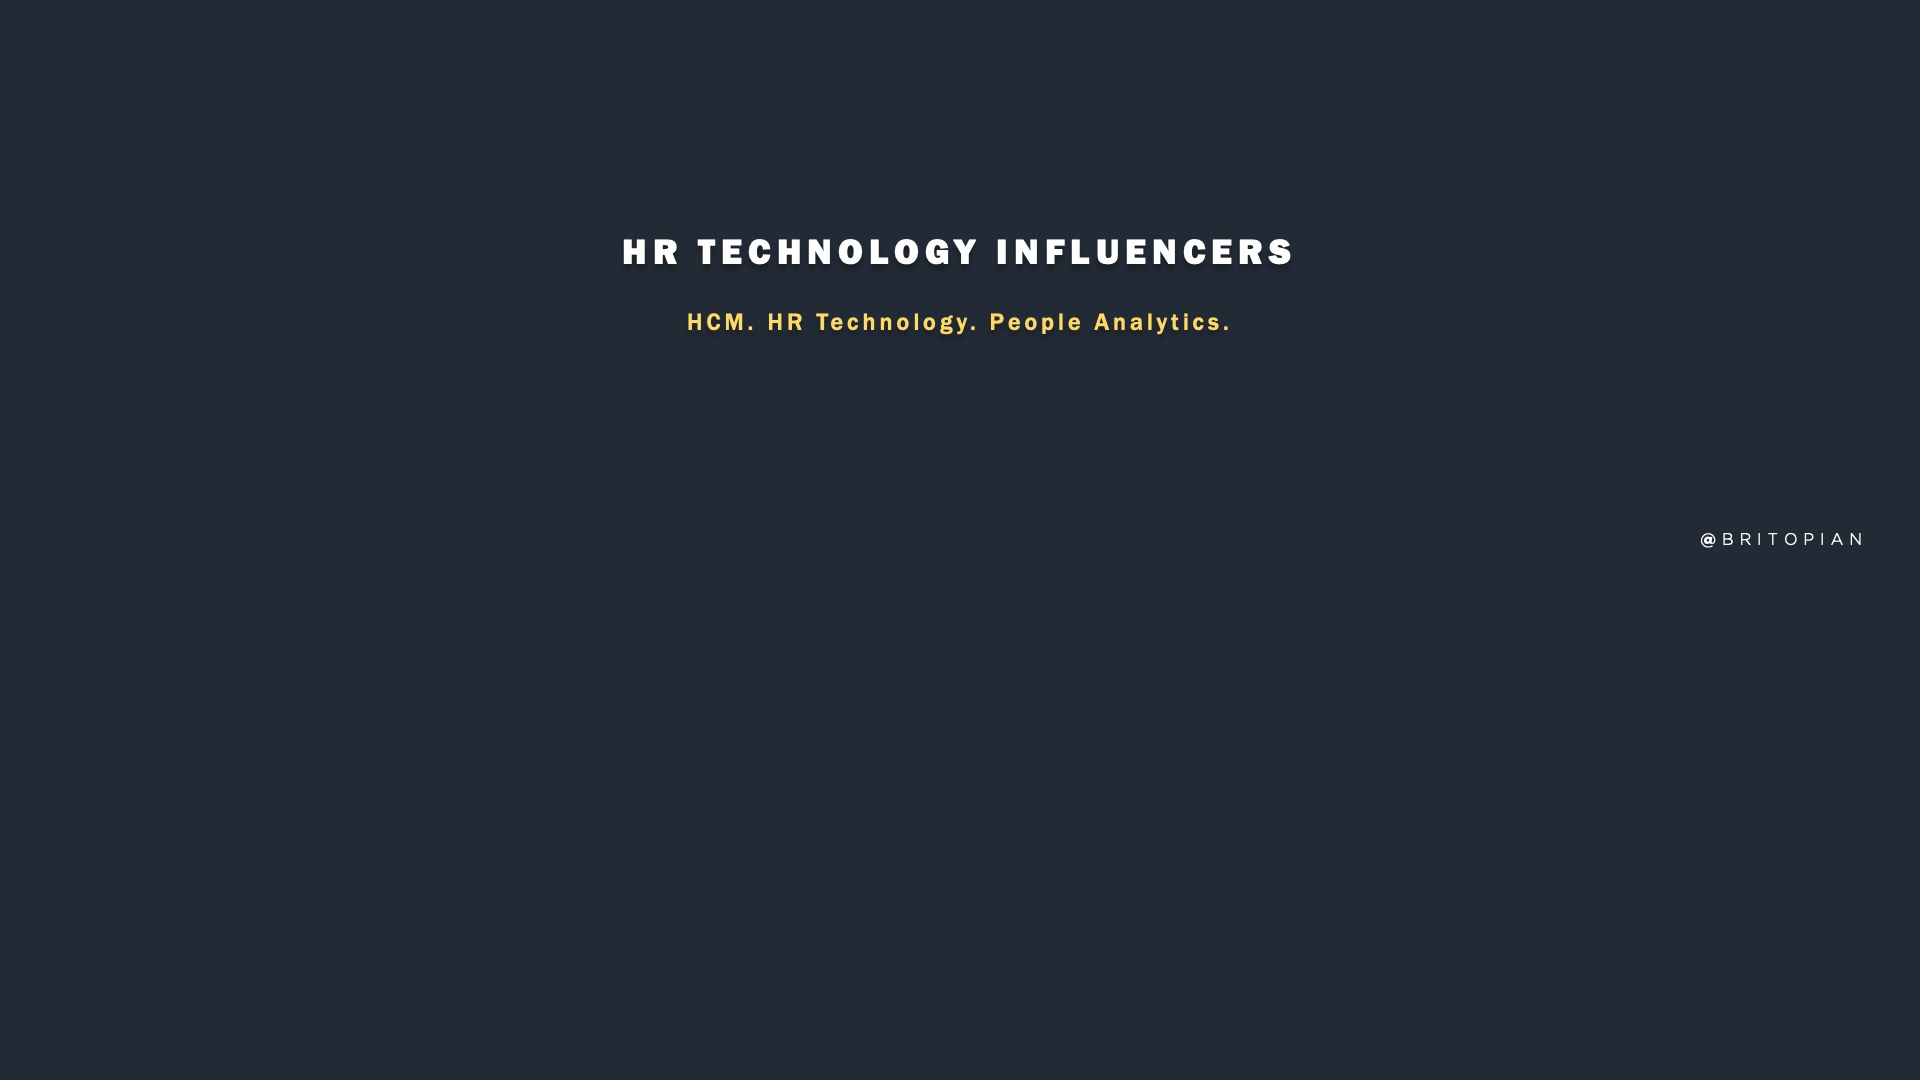 HR Tech Influencers: Who's Driving the HR Technology & HCM Narrative